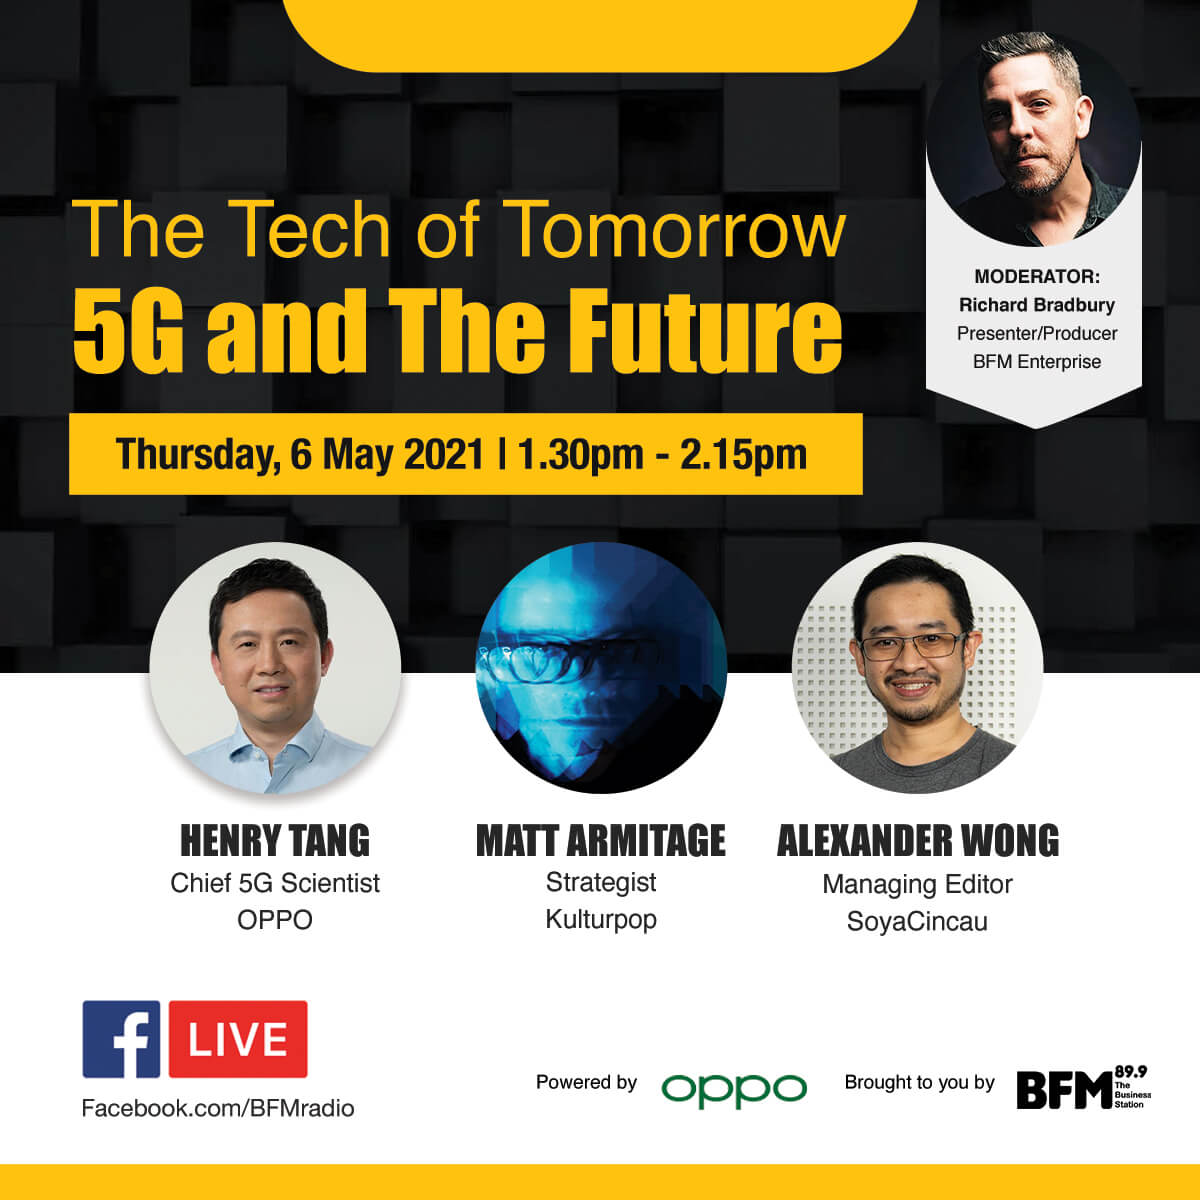 The Tech of Tomorrow: 5G and The Future